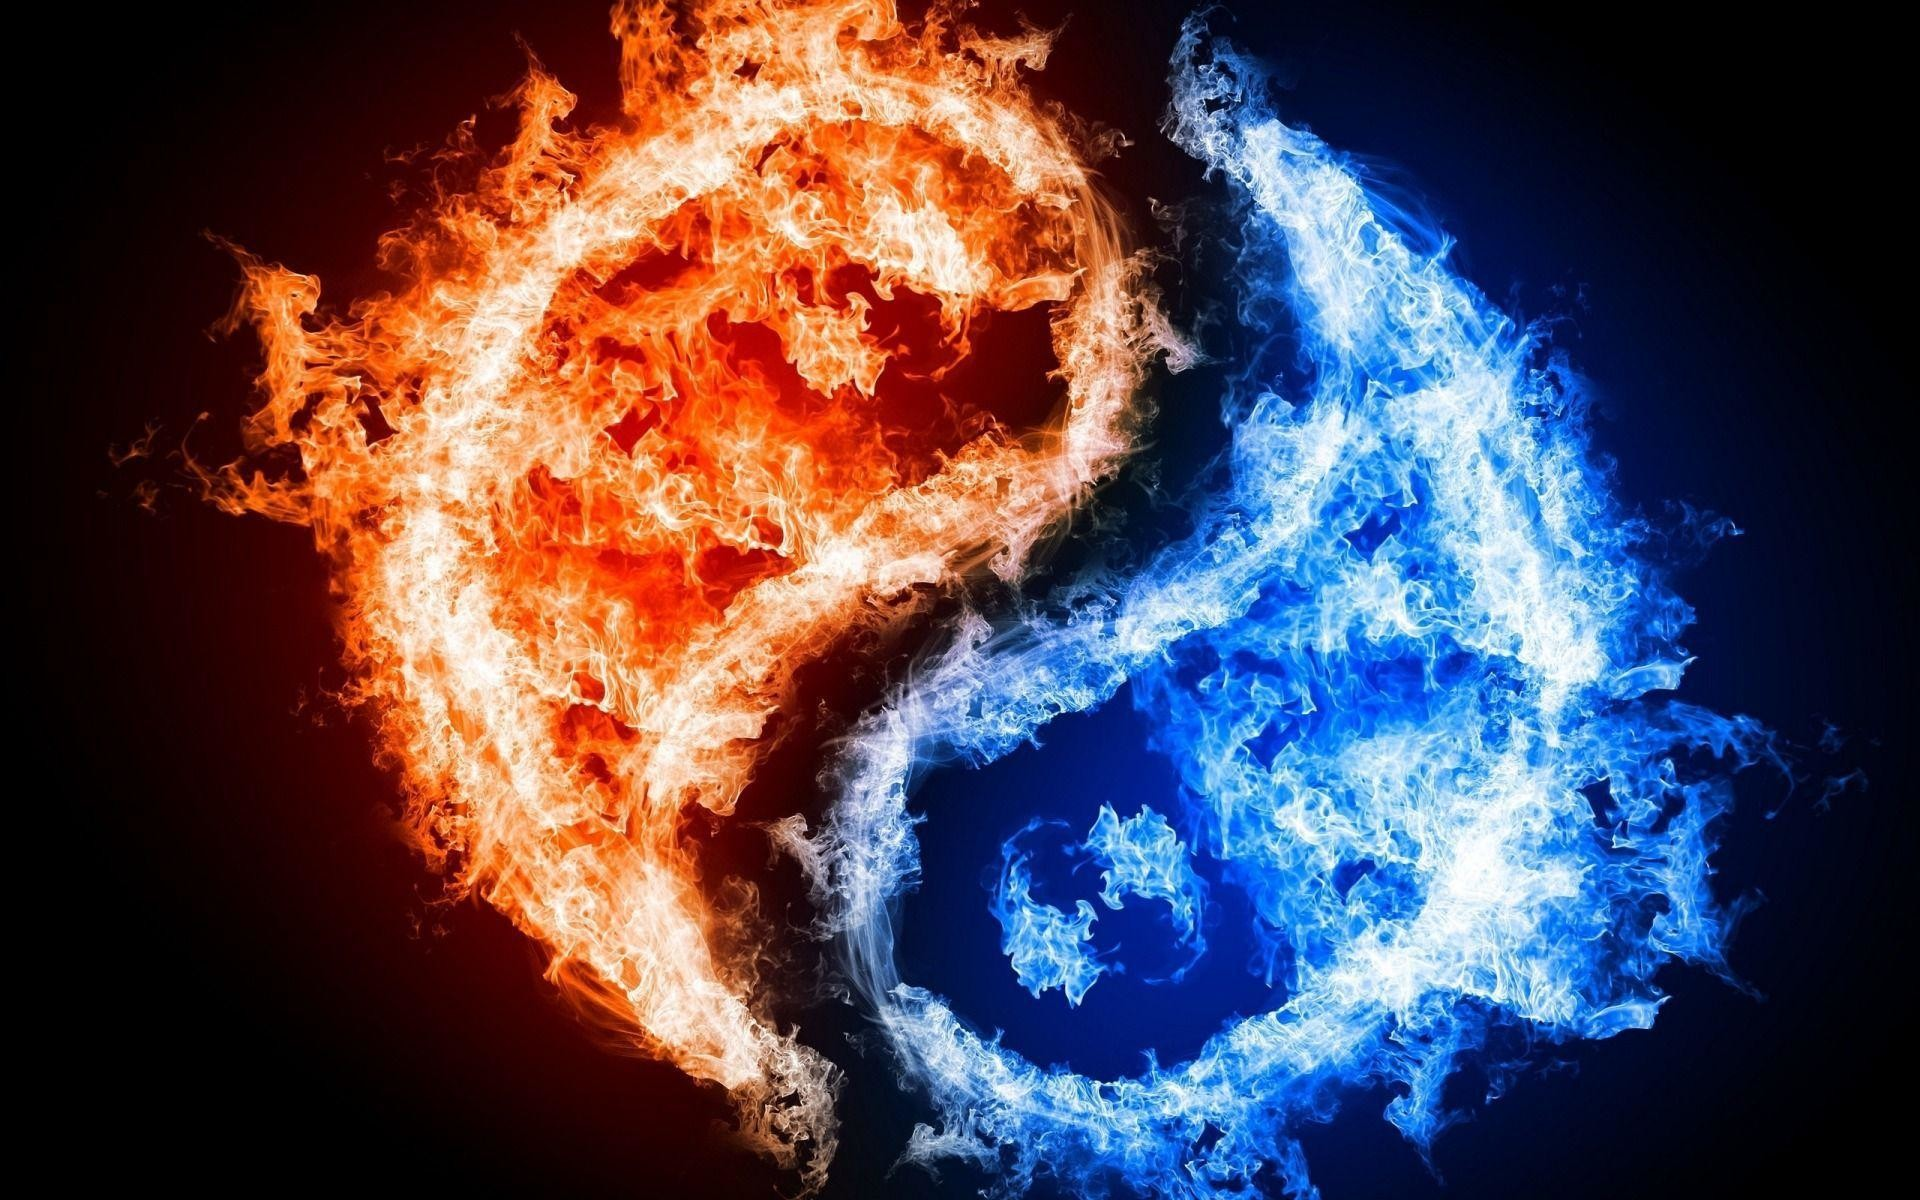 Blue and Red Fire Wallpaper, wallpaper, Blue and Red Fire .